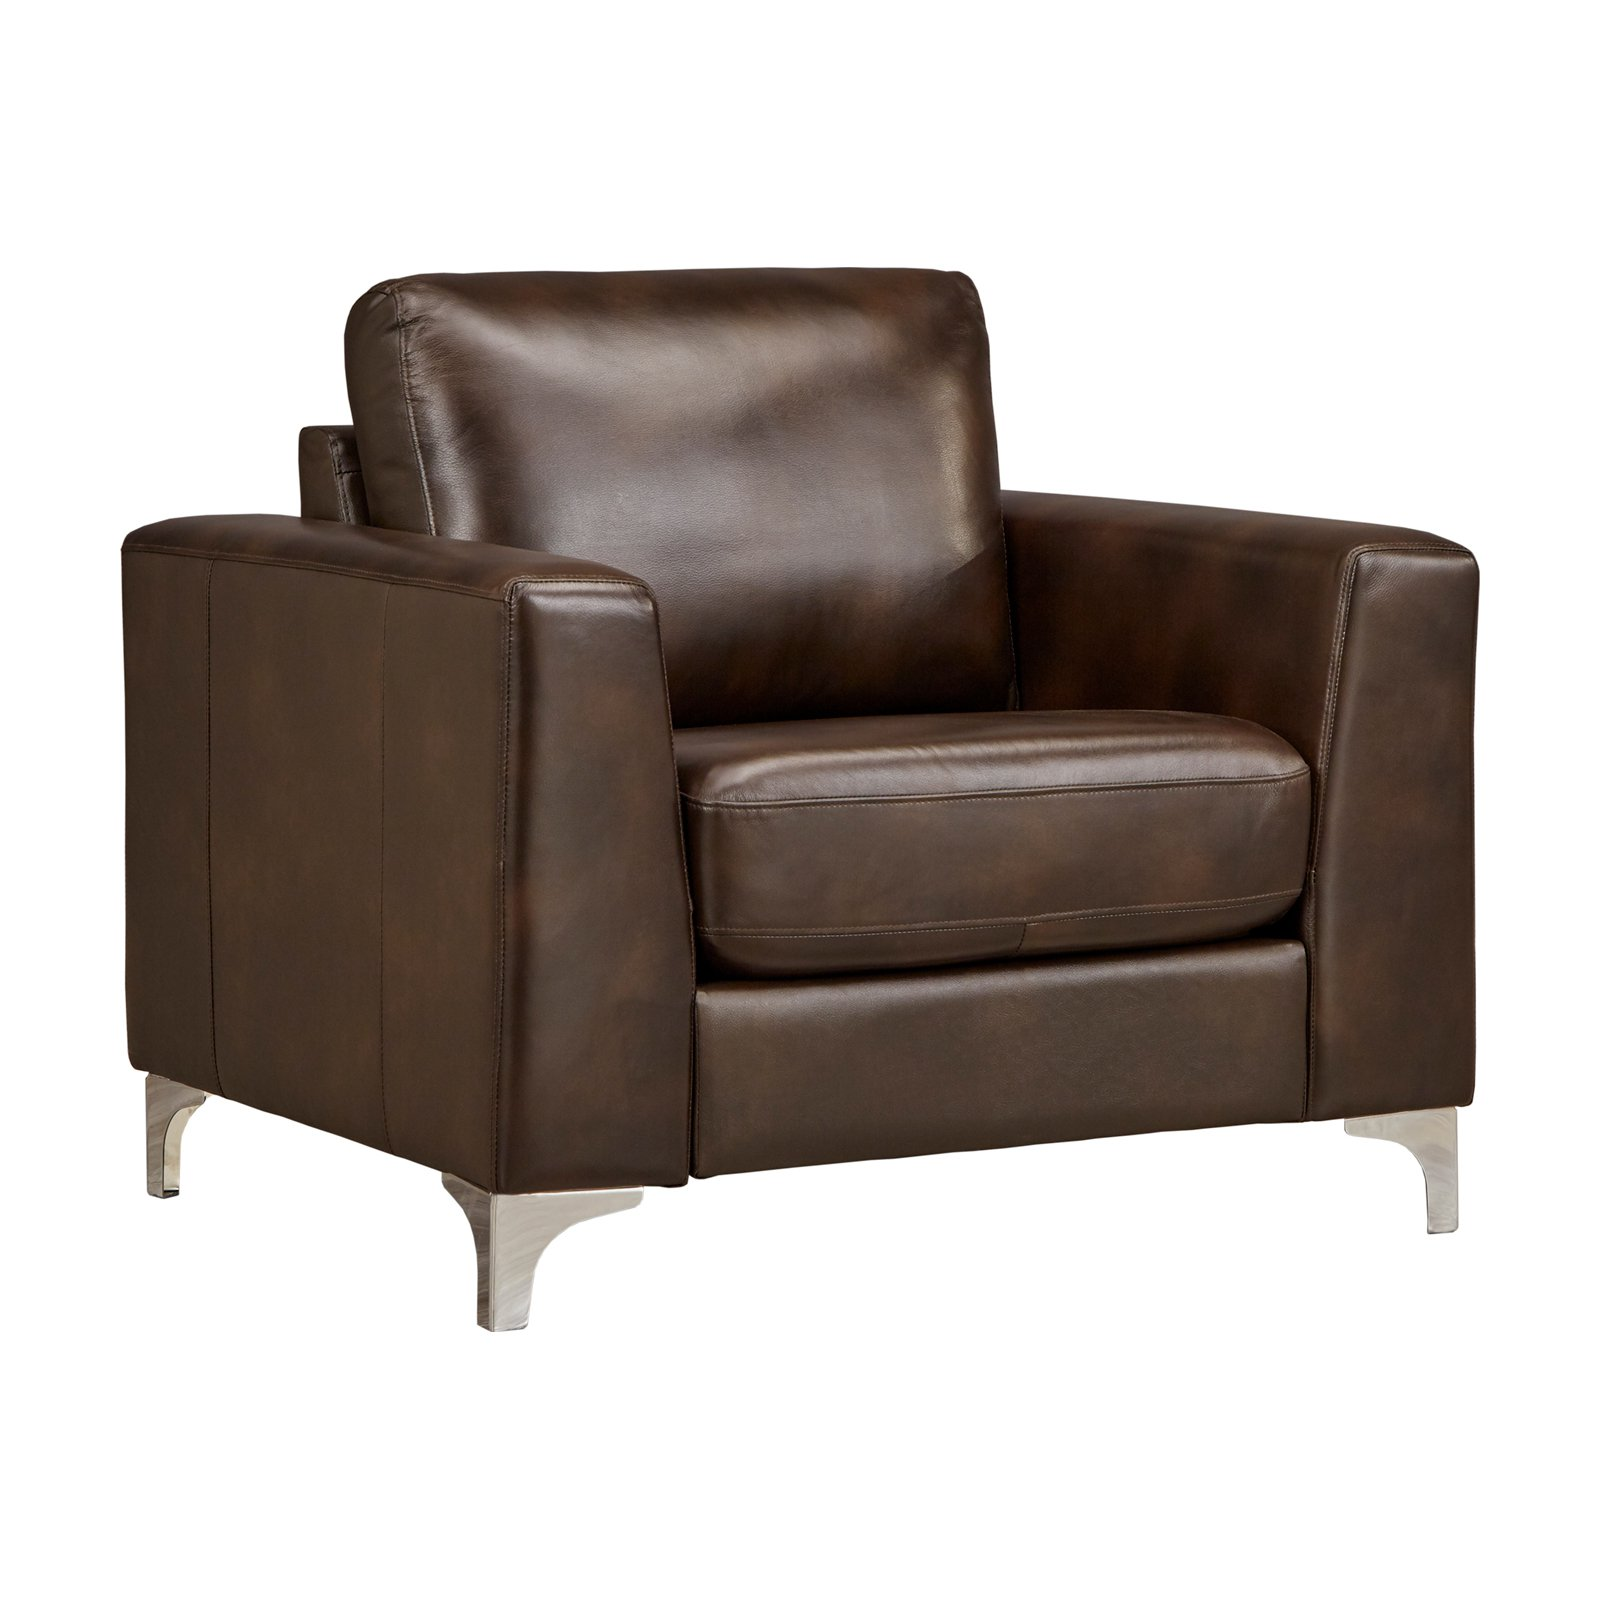 Weston Home Bronston Aniline Leather Accent Chair